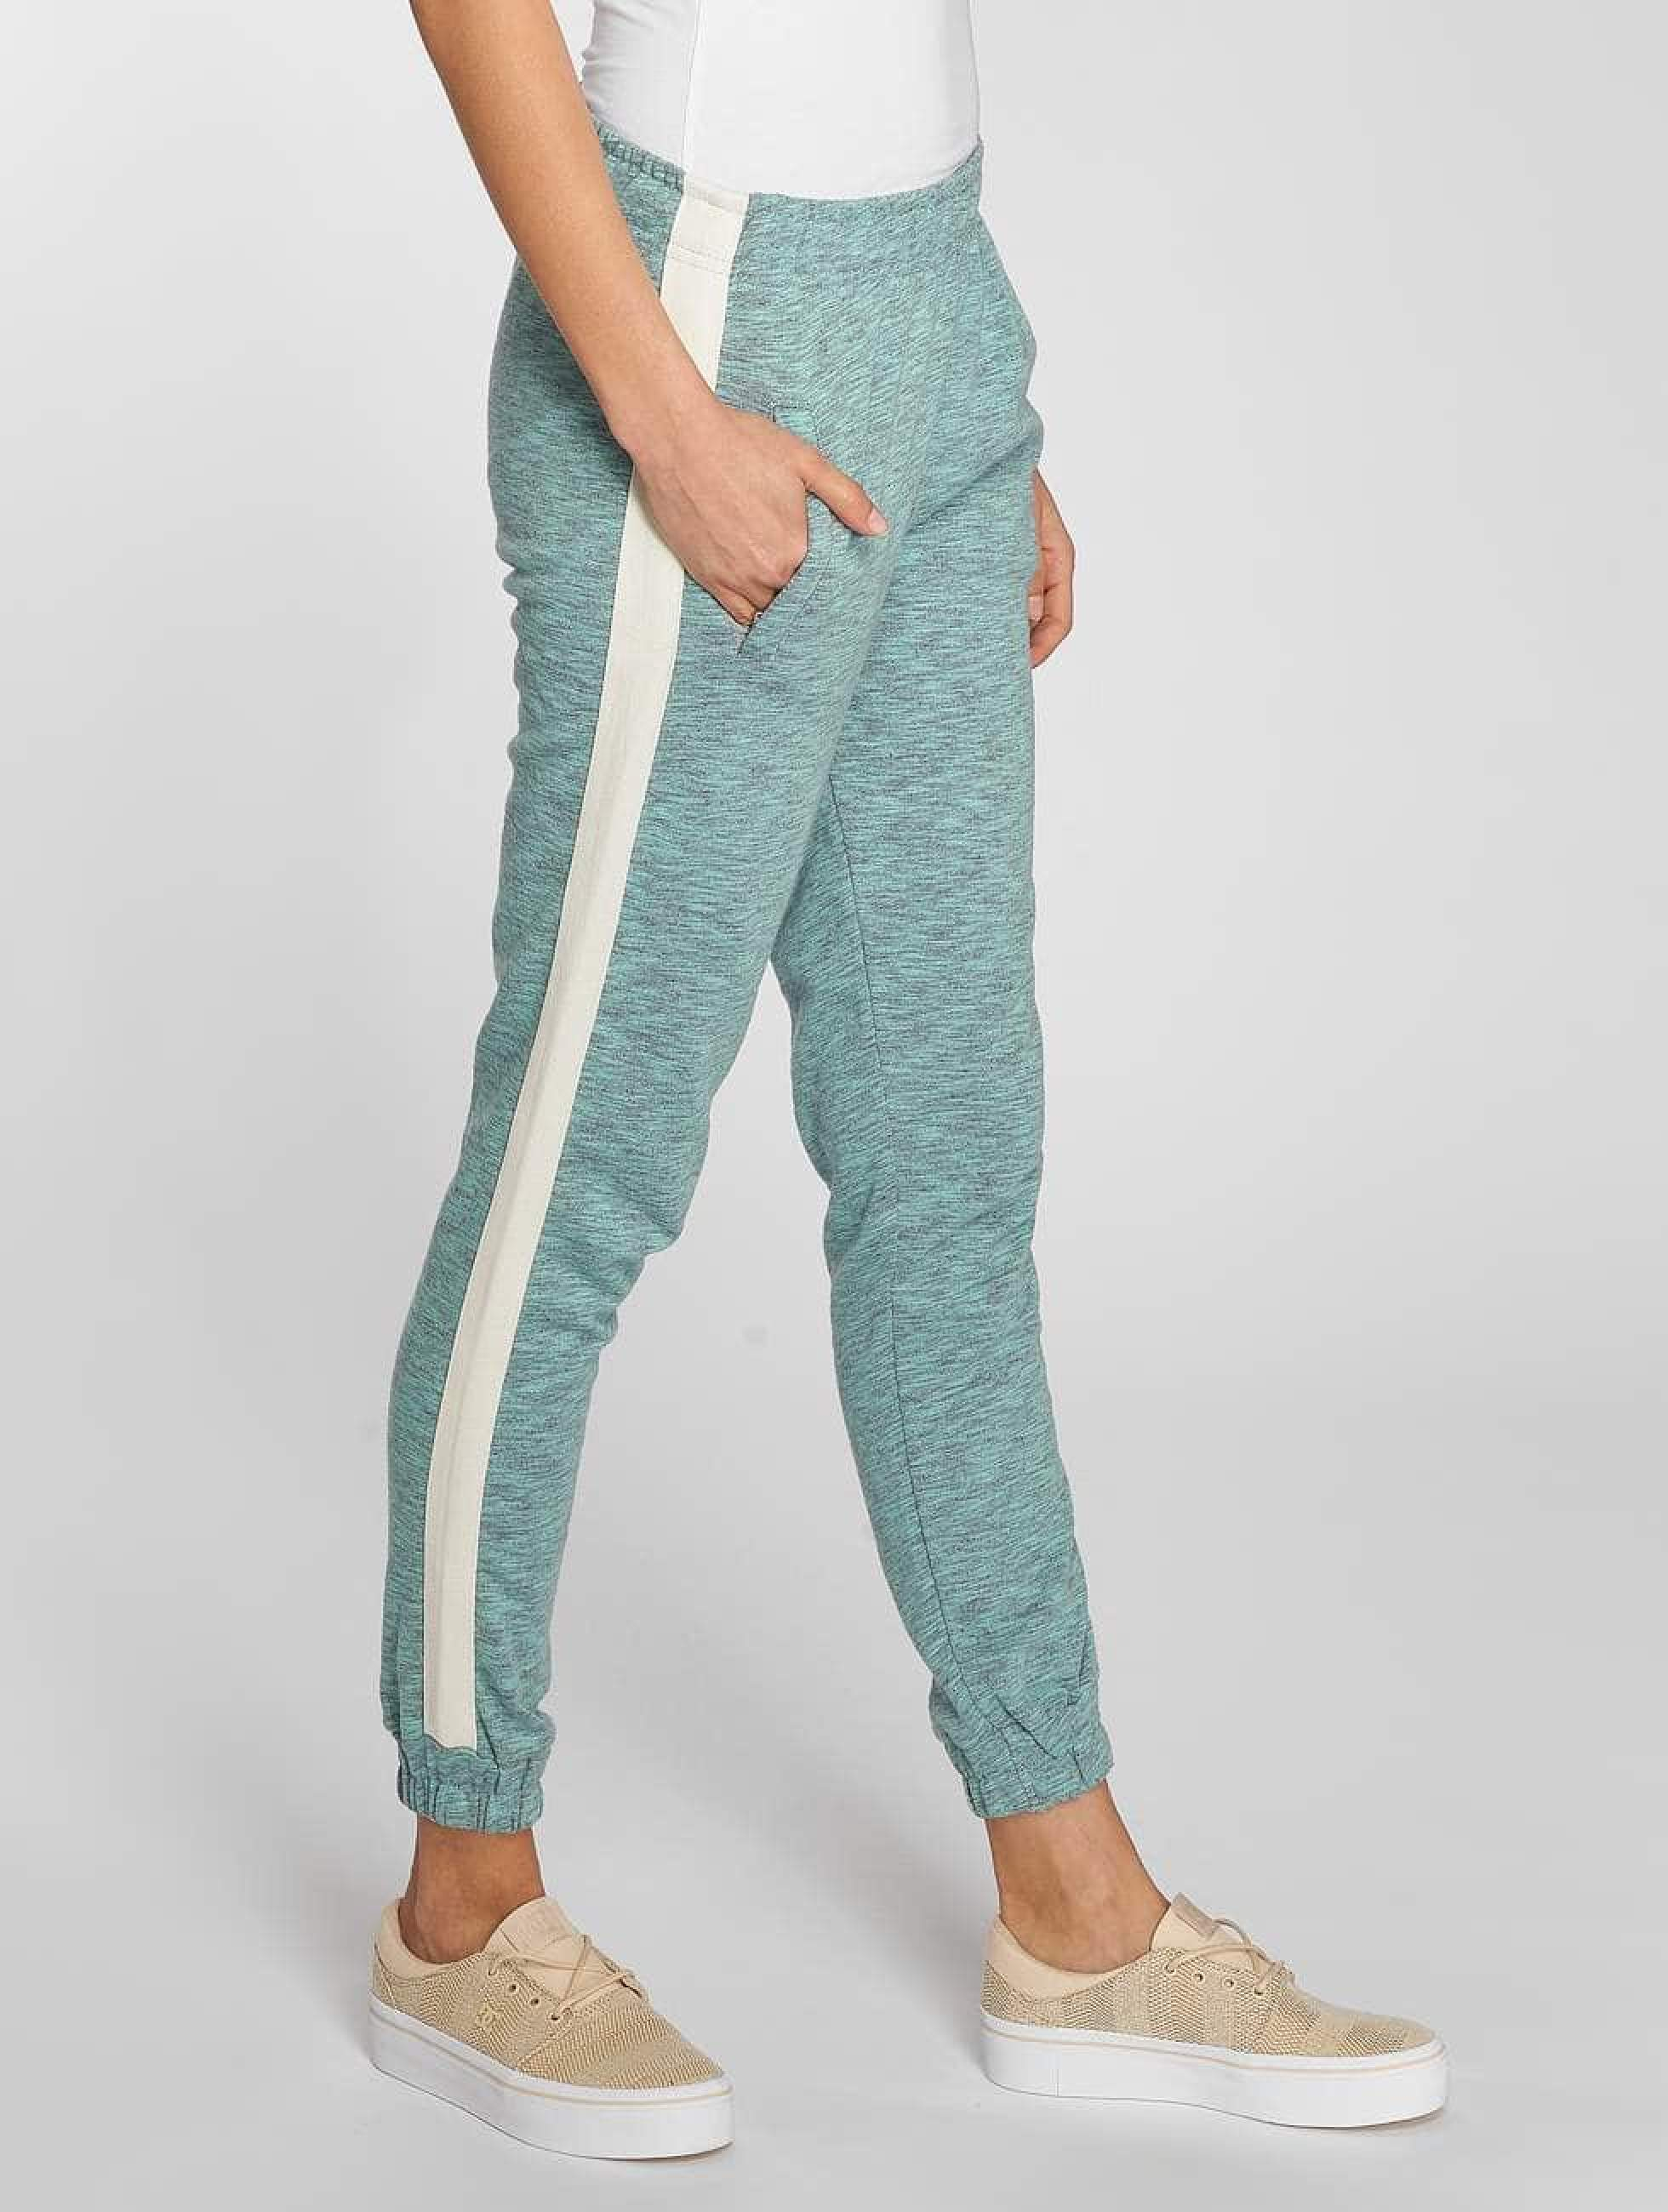 Just Rhyse / Sweat Pant Calasetta in turquoise S